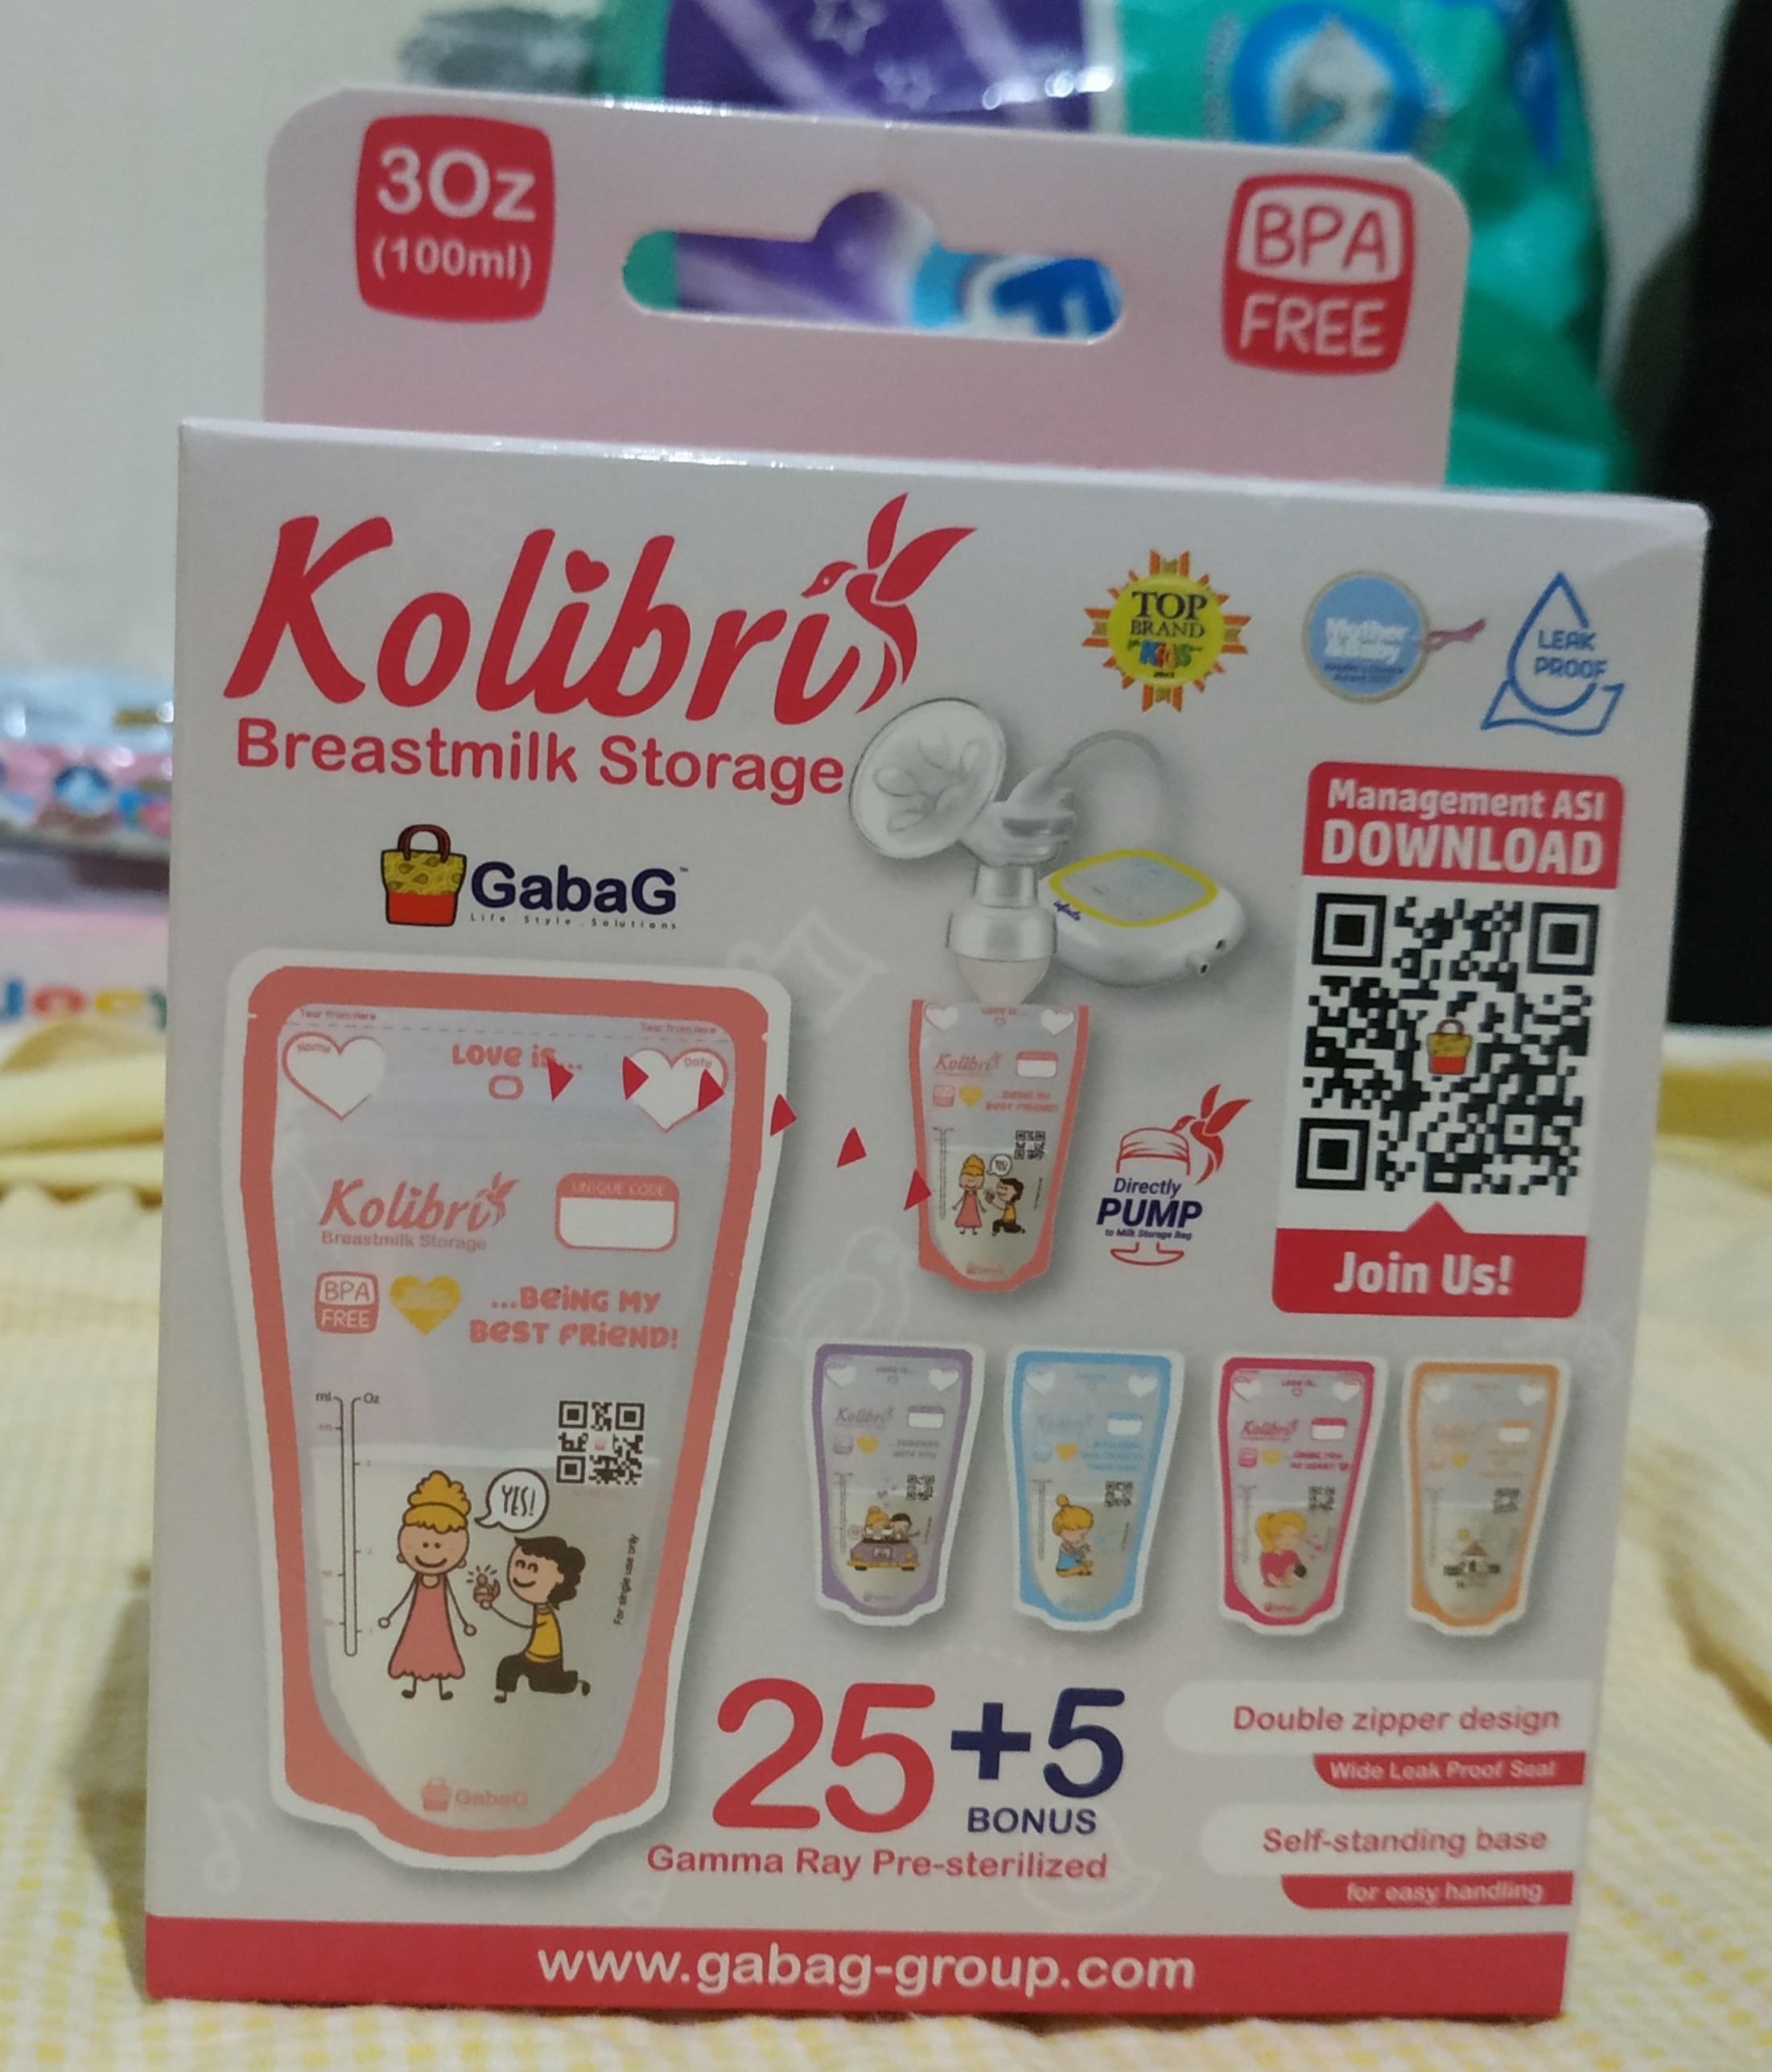 [Review Product] Breastmilk Storage - Kolibri Gabag 100ml